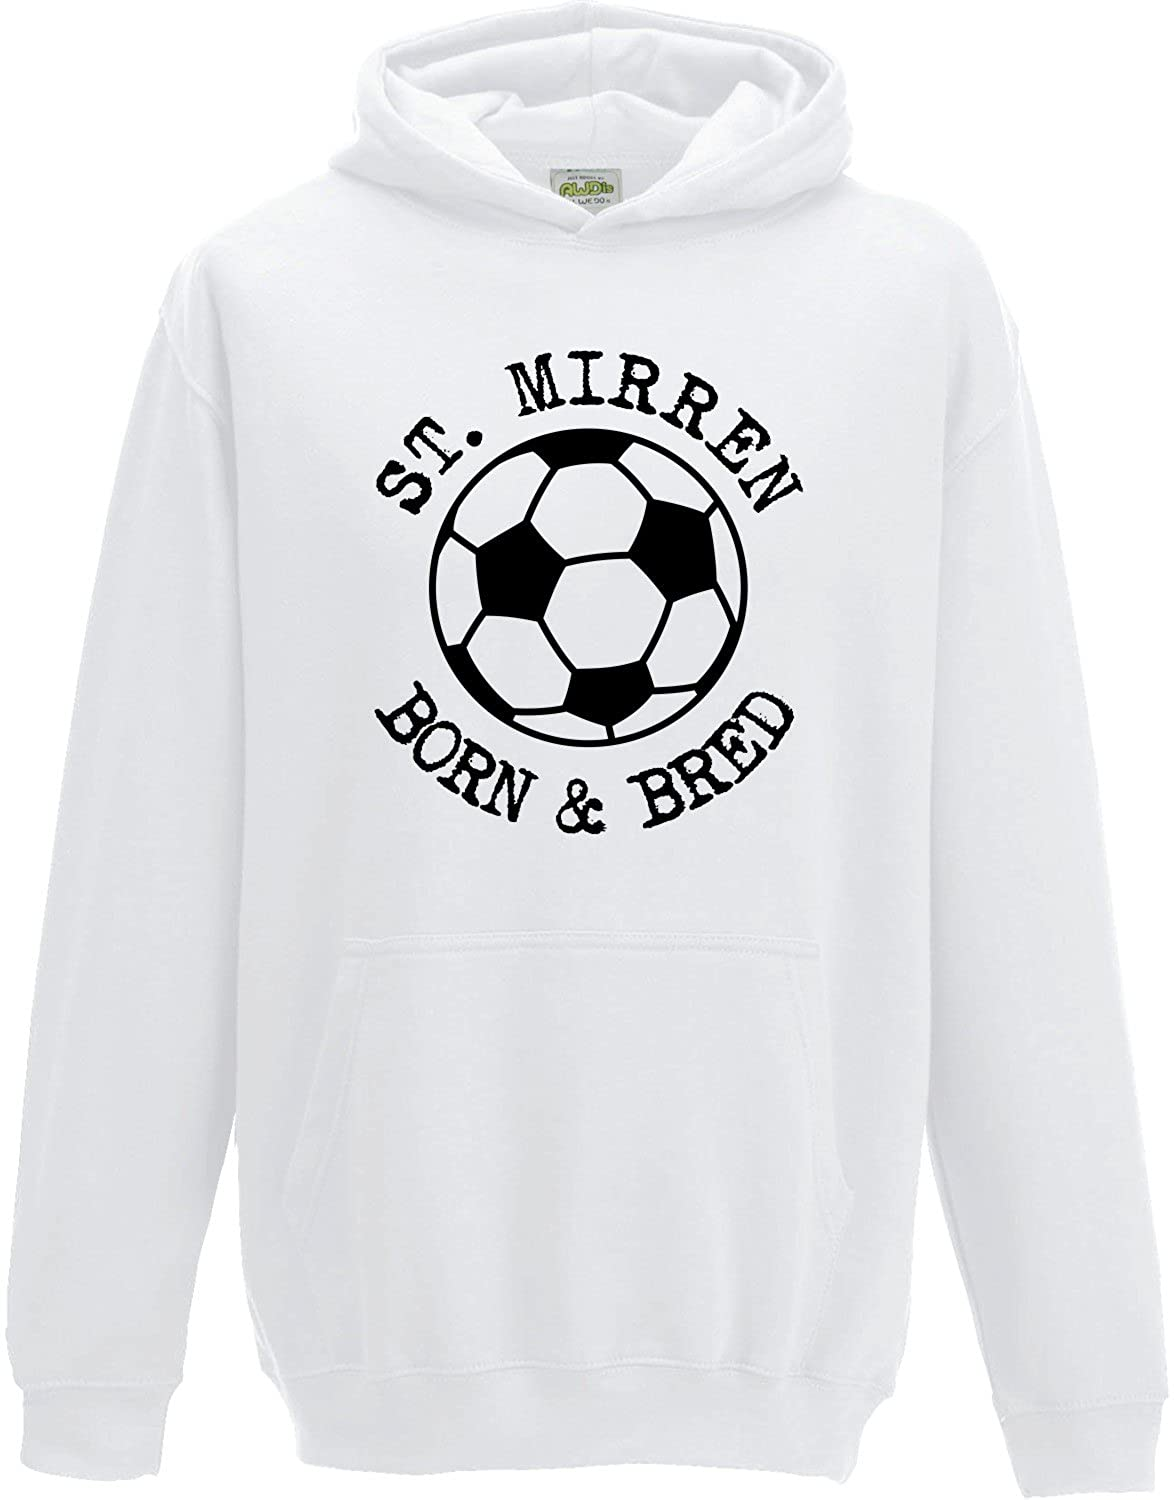 Hat-Trick Designs St Mirren Football Baby/Kids/Childrens Hoodie Sweatshirt-White-Born & Bred-Unisex Gift